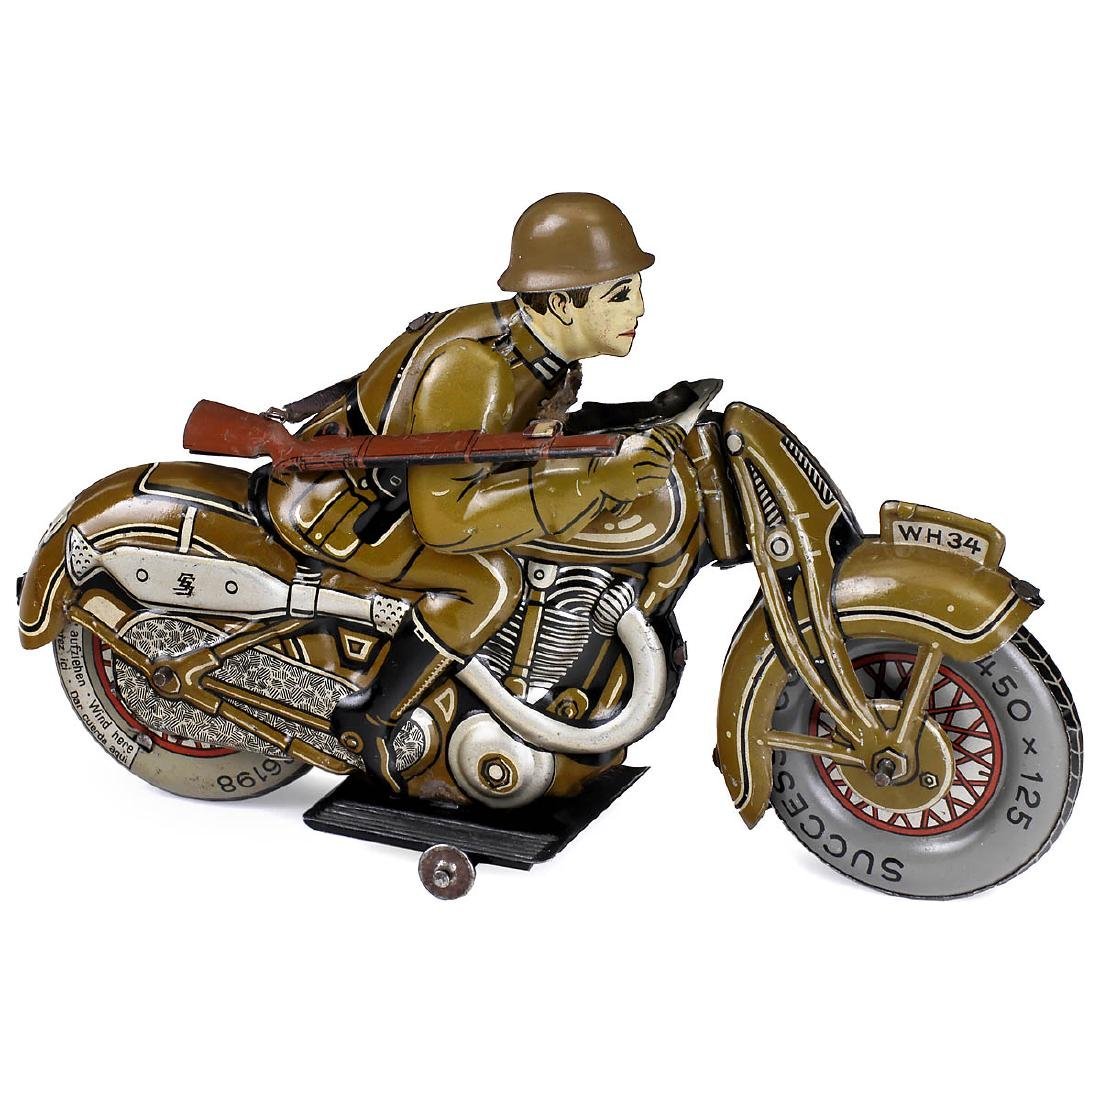 Military Motorcycle WH34 by Saalheimer & Strauss, with